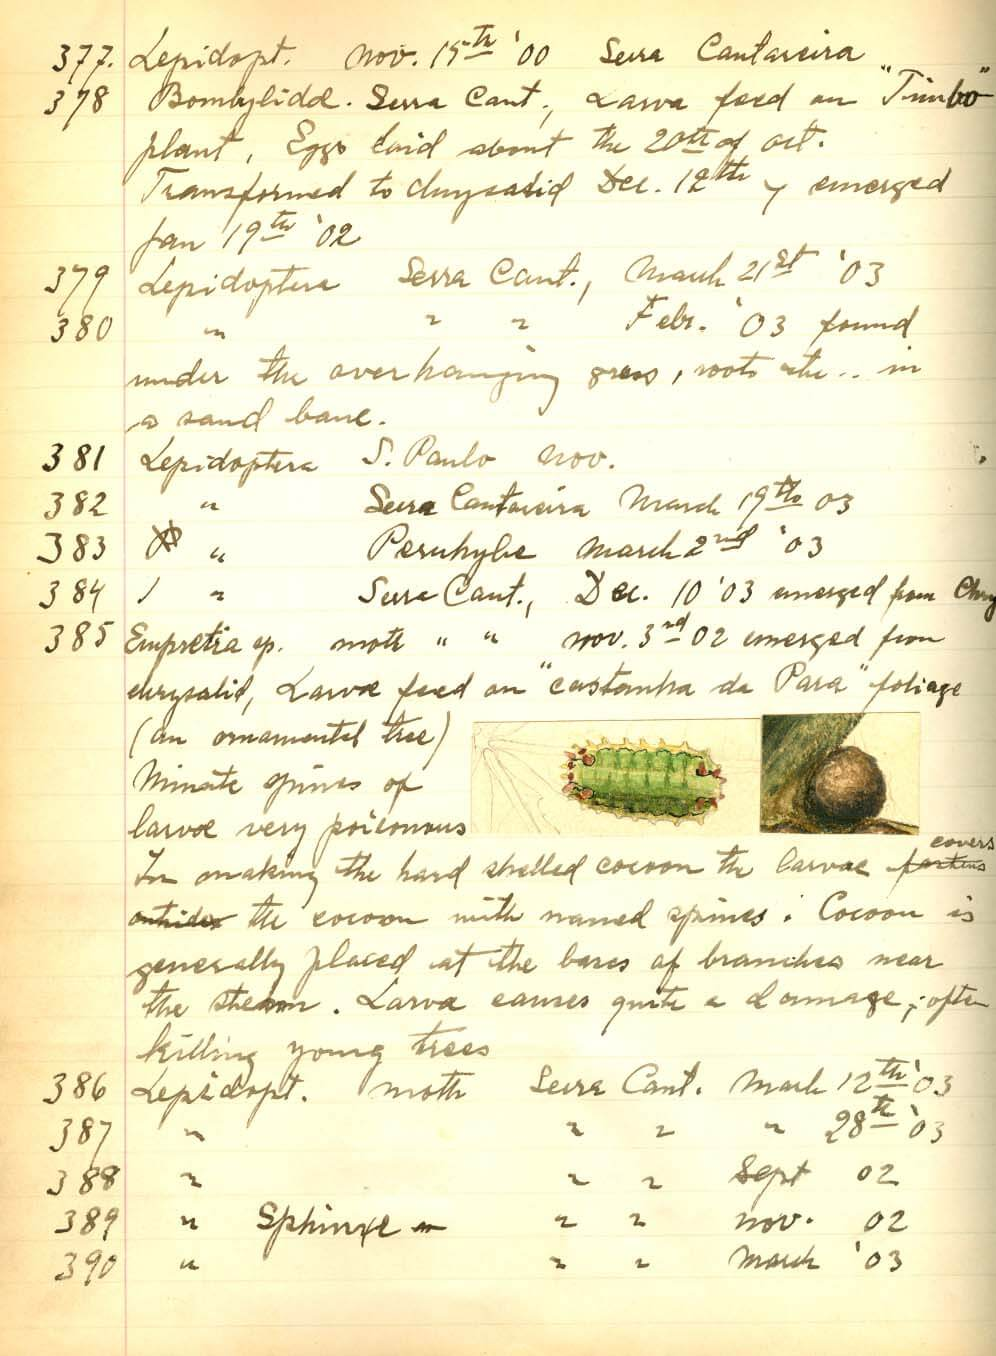 A page of notes from a hand-written lot book showing information associated with specimens collected by A. G. Hammar near Sao Paulo, Brazil, from 1900-1903